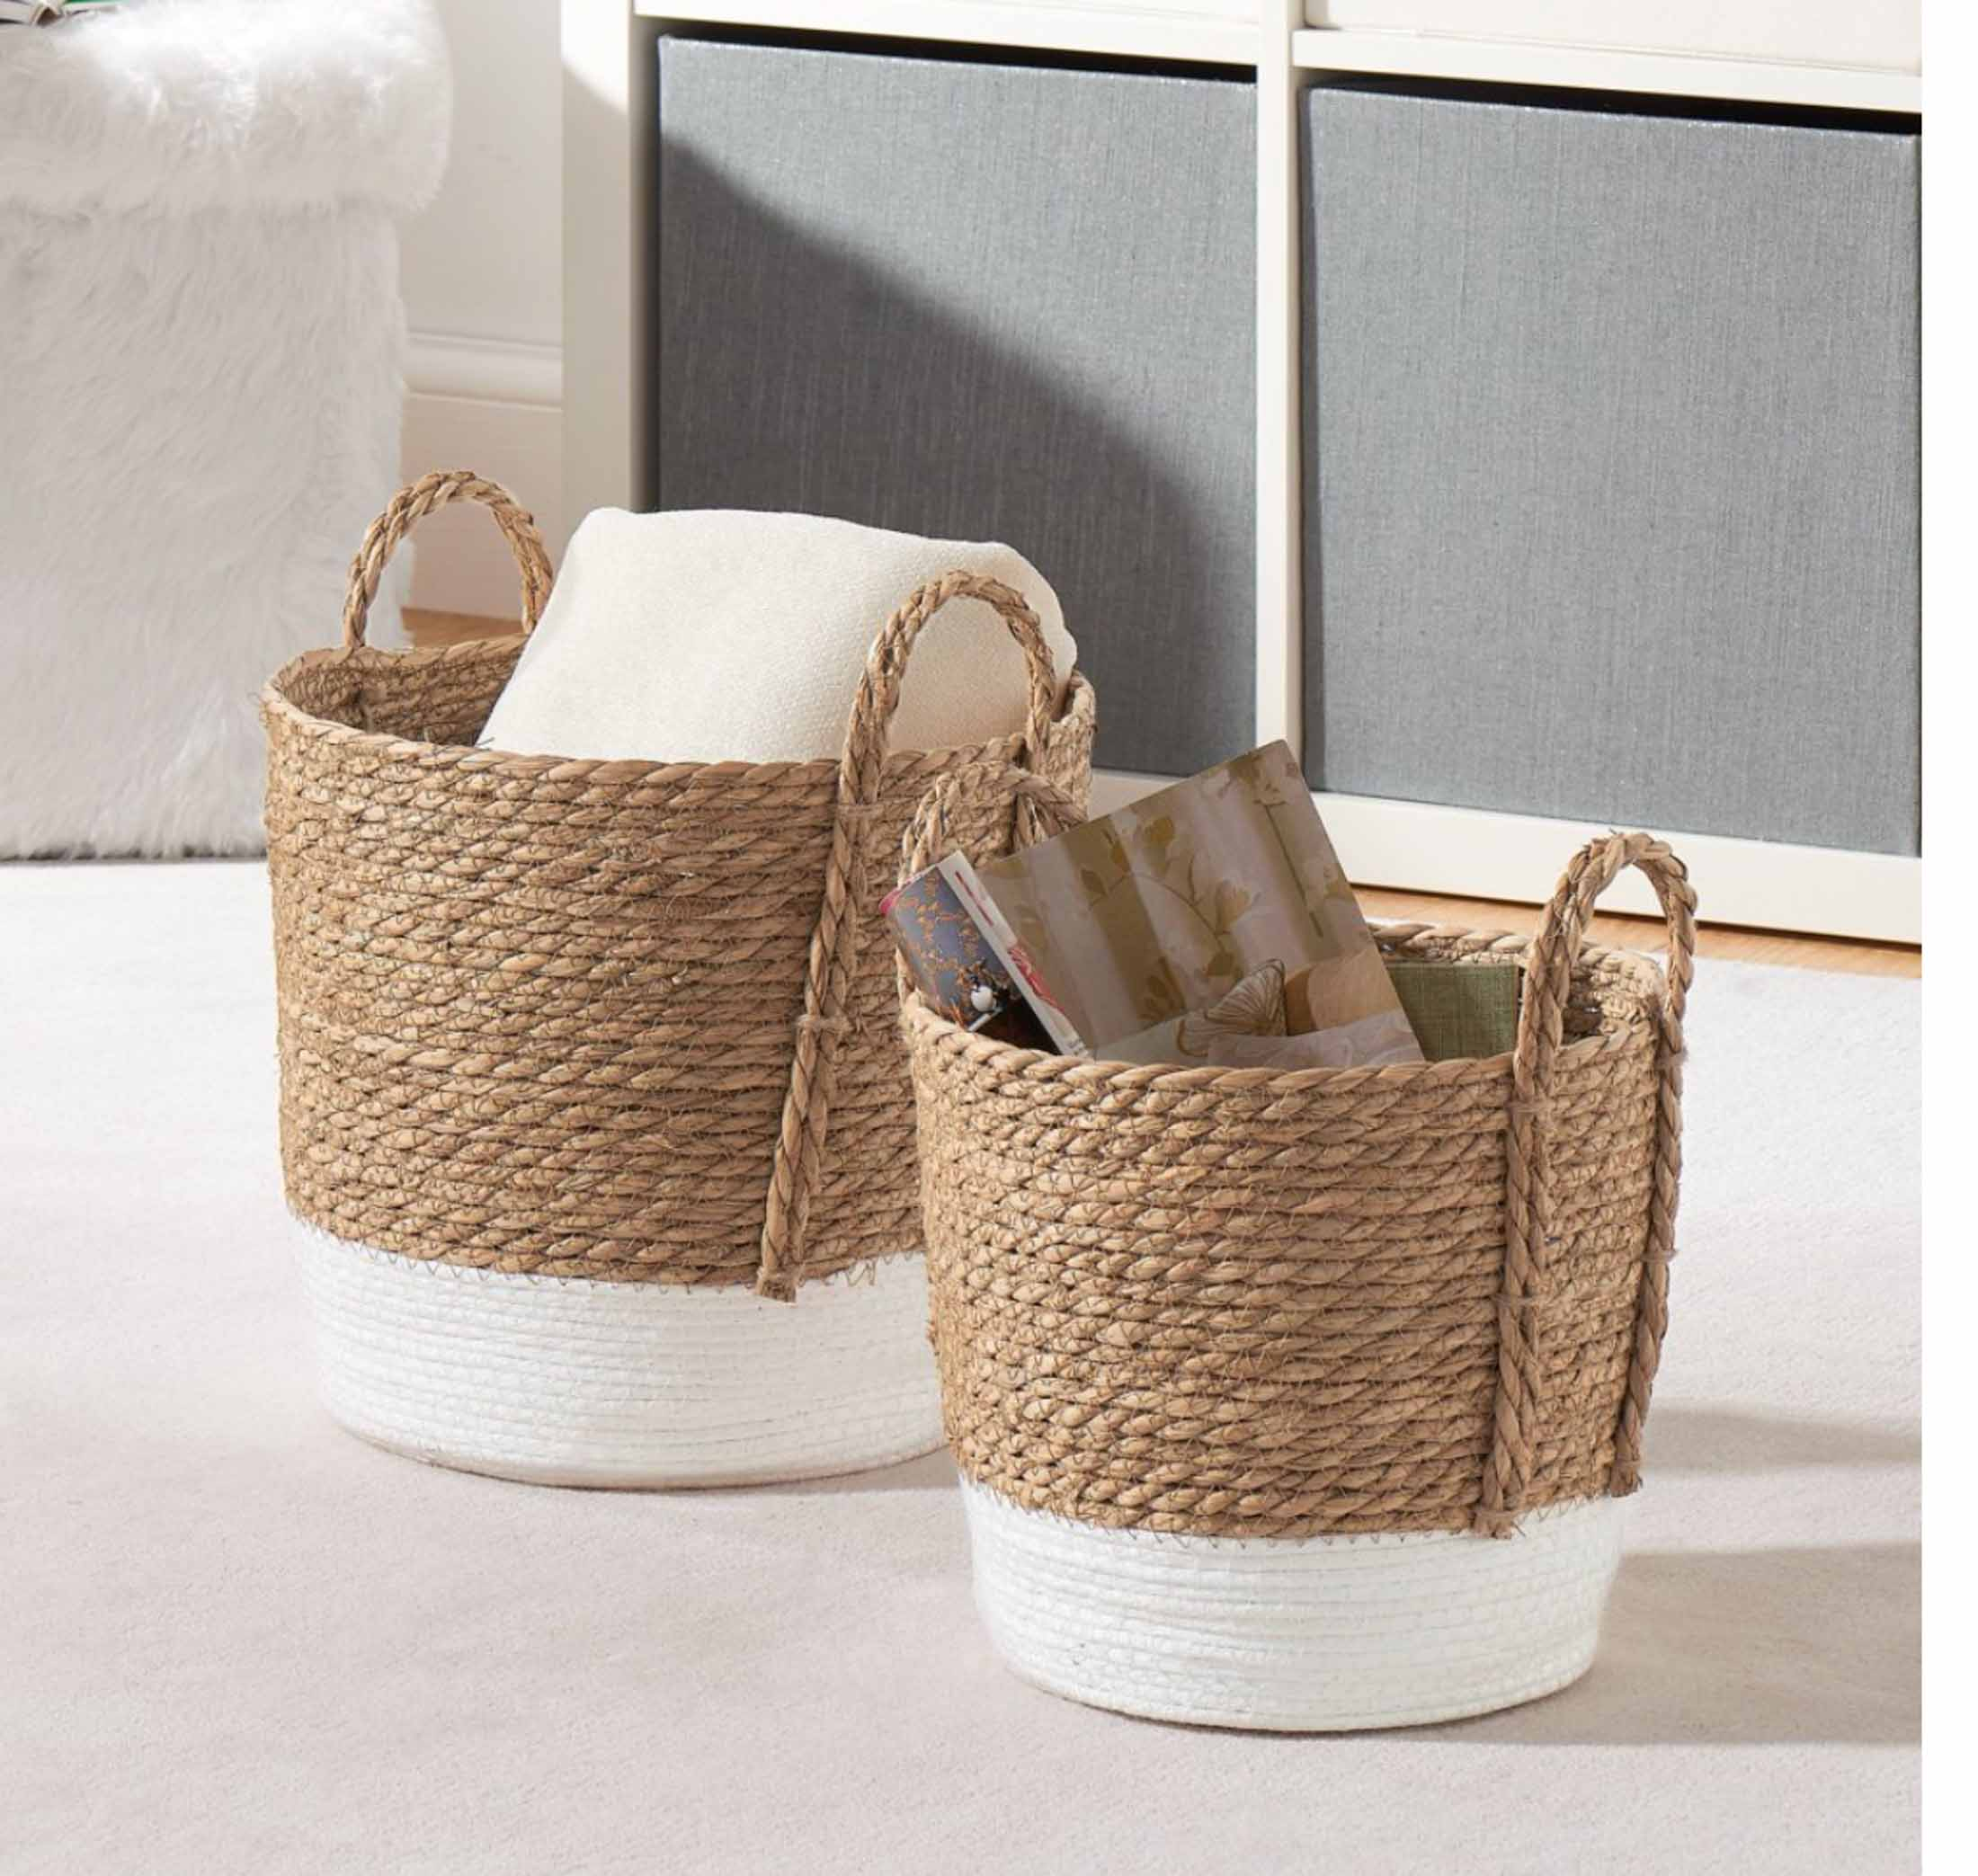 For summer, I love swapping out throw pillows, artwork & bright tableware...bringing in that beachy boho feel or nautical theme by adding greenery + textured baskets.